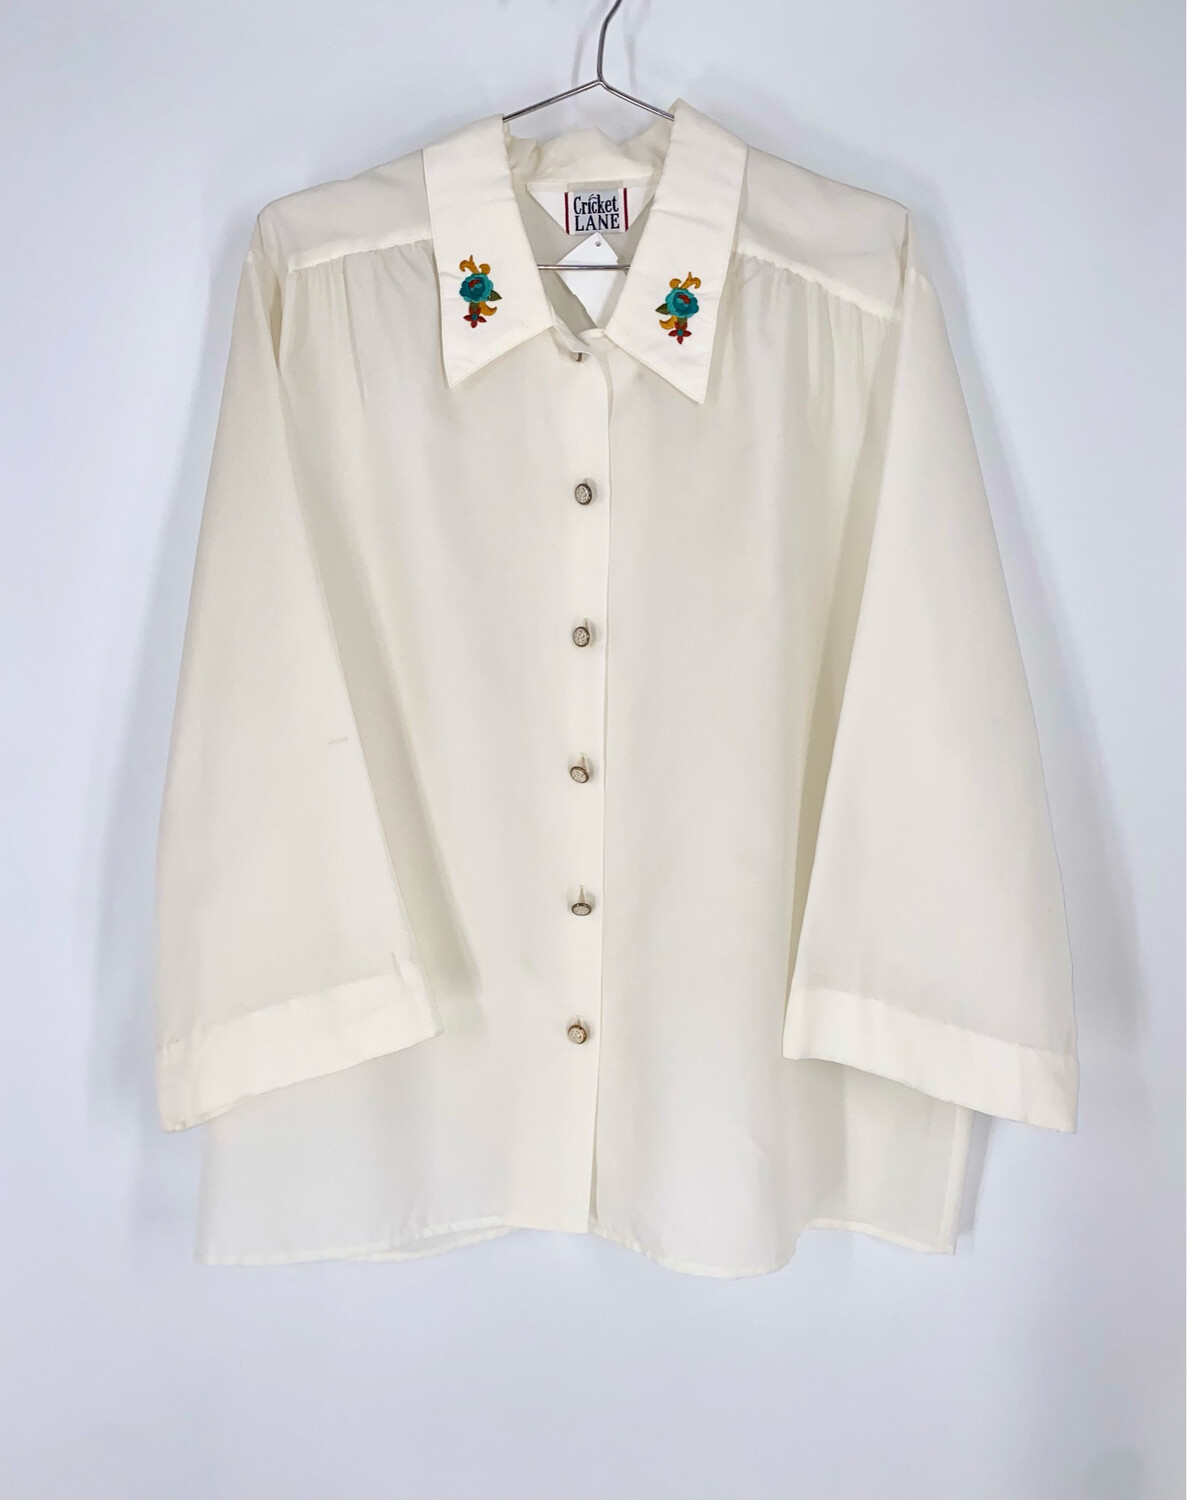 Cricket Lane Embroidered Collar Button Up Size M